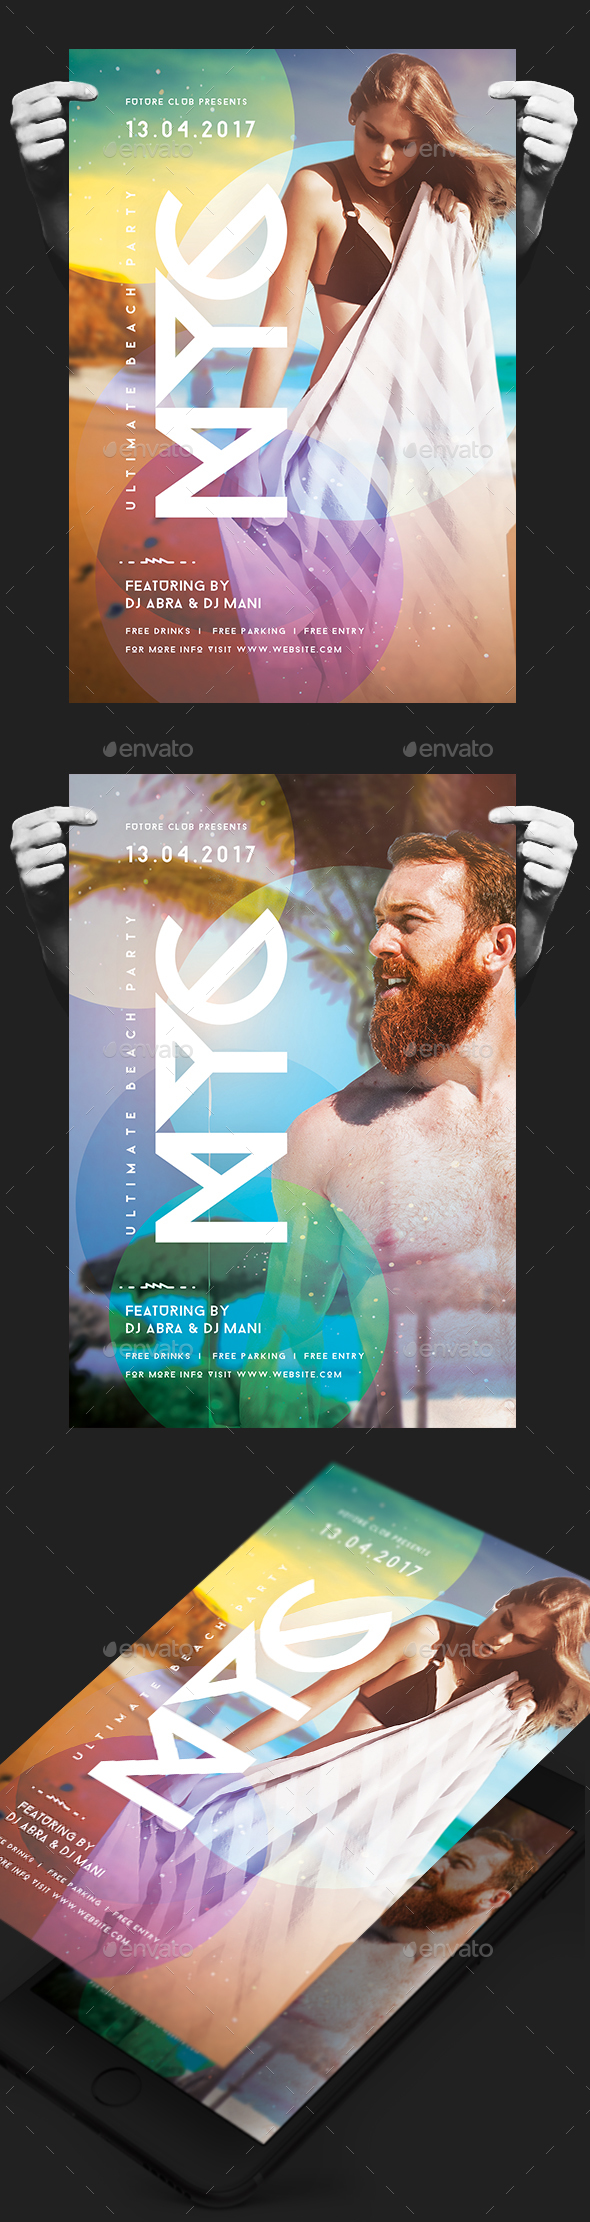 NYC Summer Party Flyer - Clubs & Parties Events